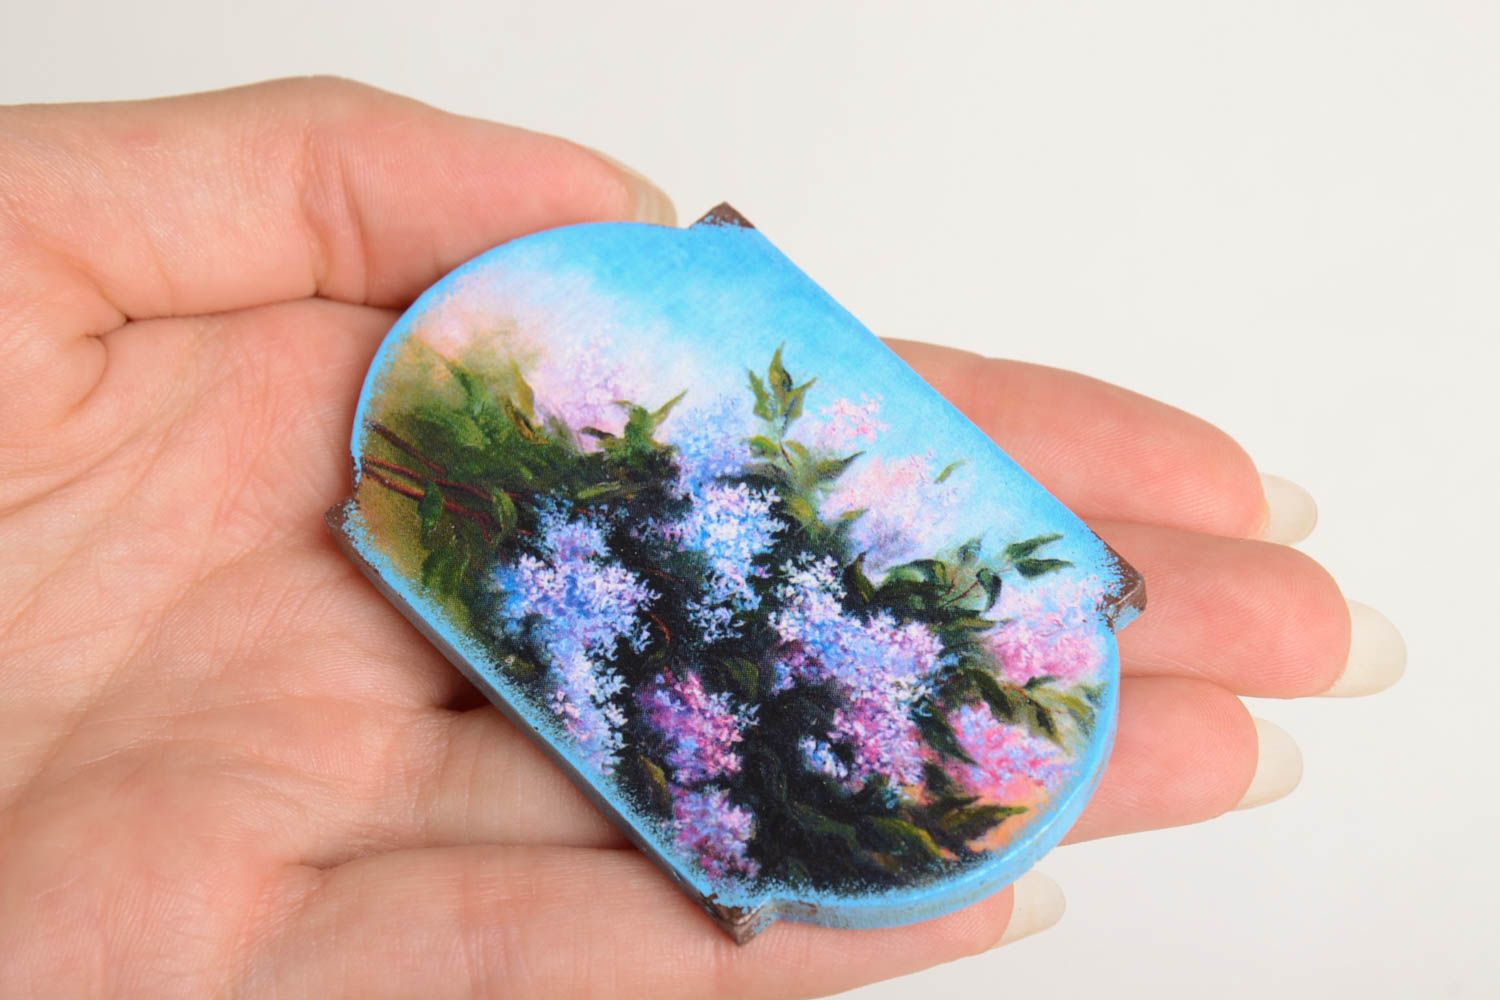 Unusual handmade fridge magnet kitchen supplies small gifts decorative use only photo 4